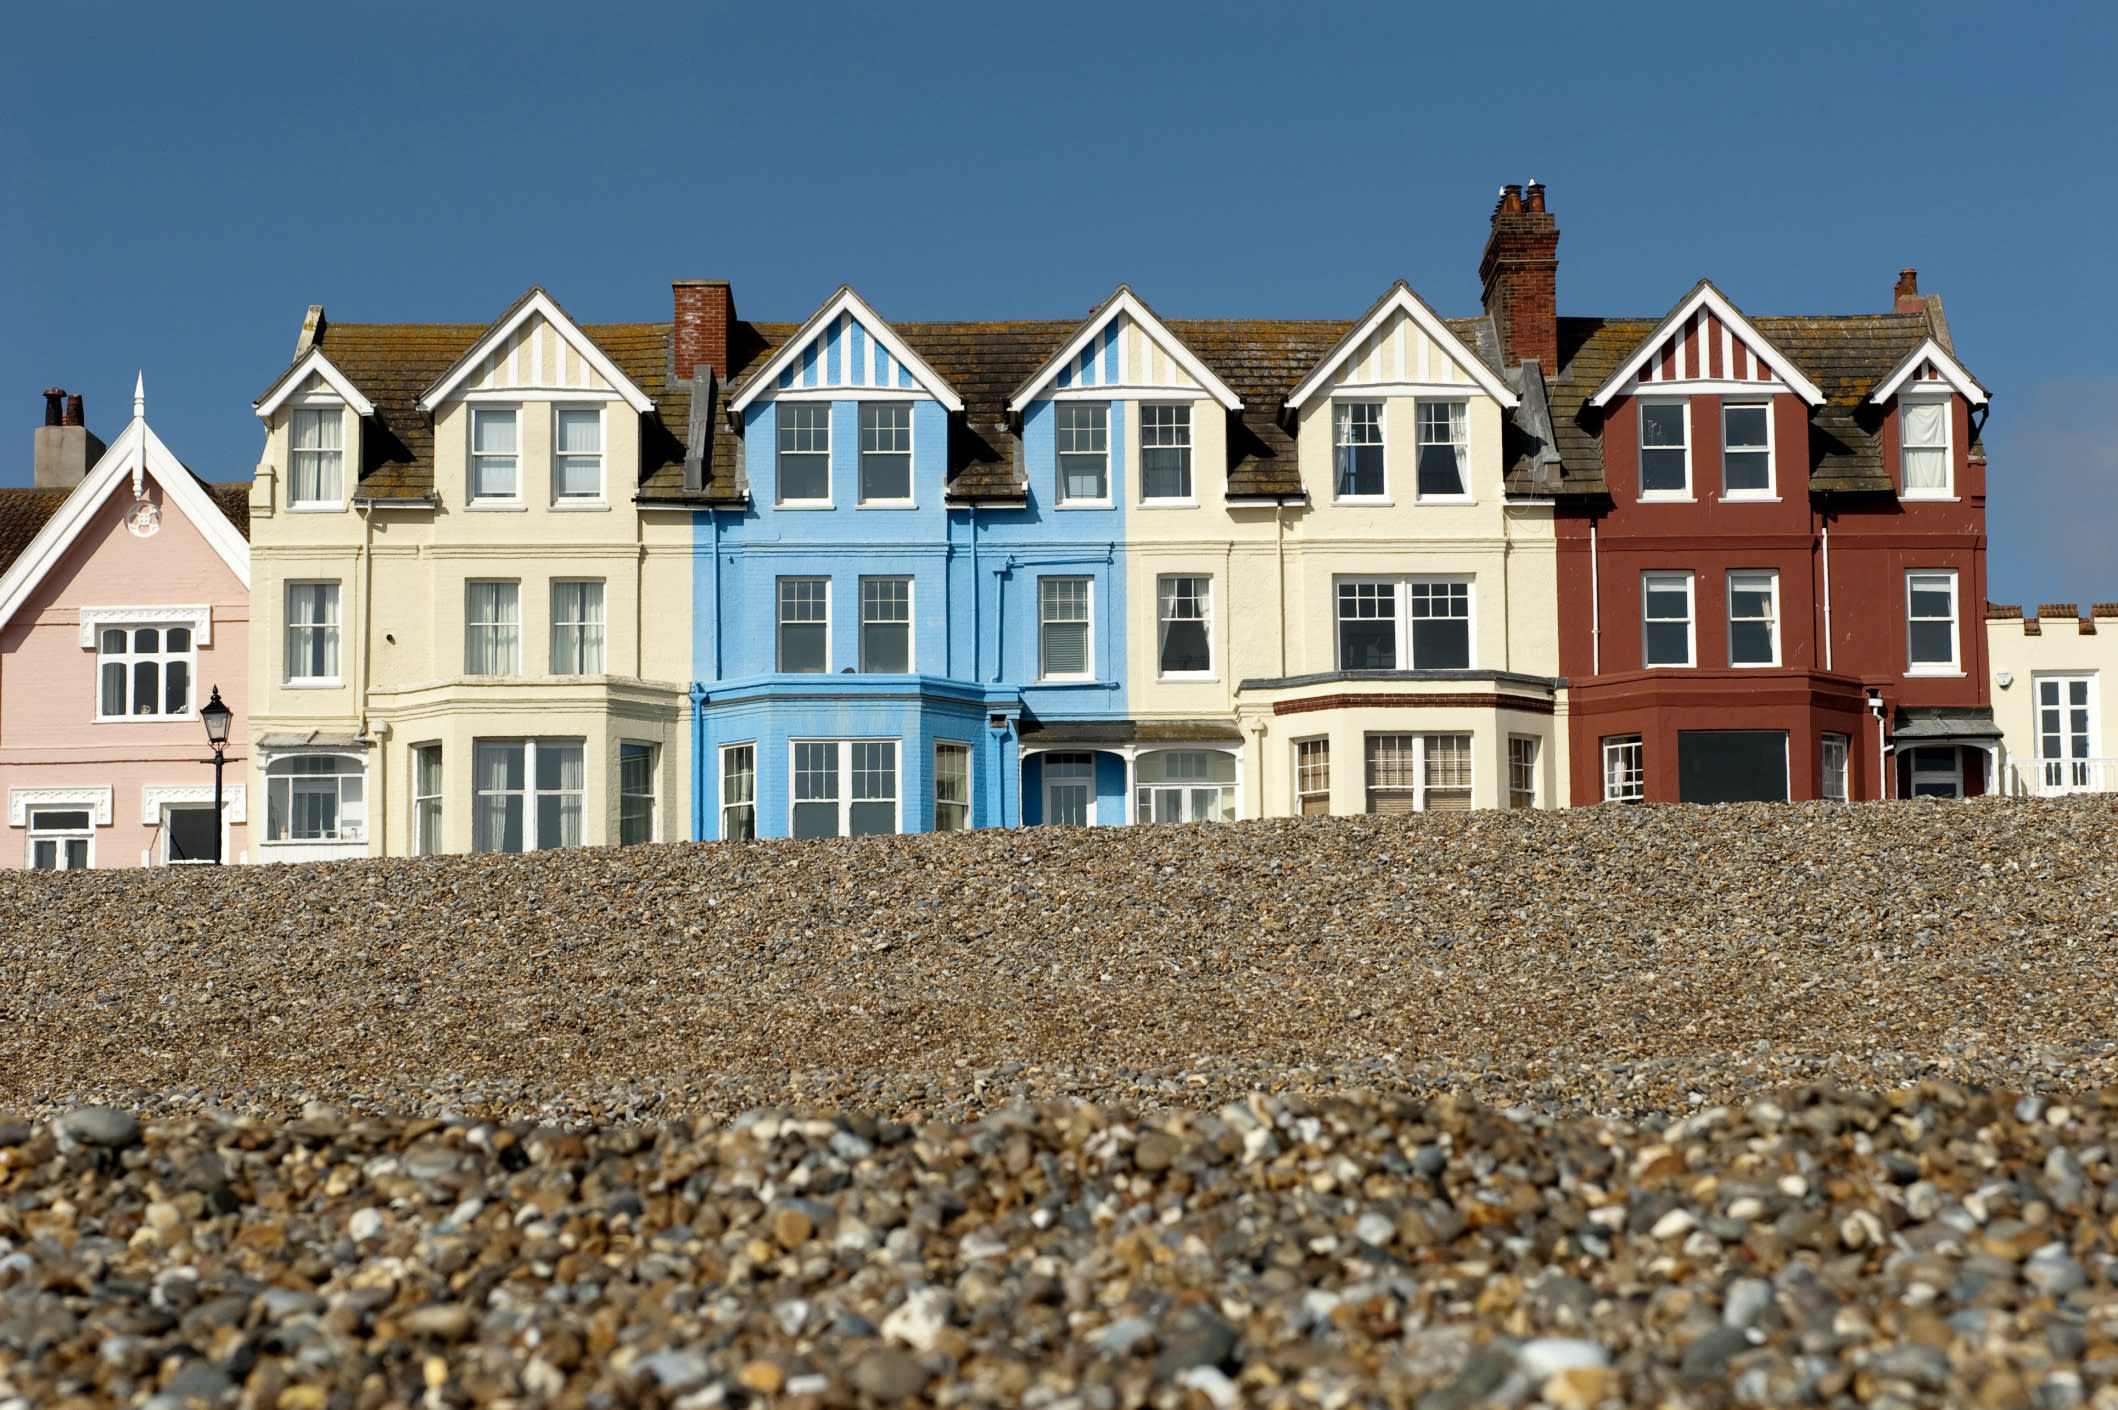 """This quiet town on the Suffolk coast is the birthplace of world-famous musician Benjamin Britten and retains its musical importance to this day as it holds the <a href=""""https://tickets.aldeburgh.co.uk/Online/festival"""" target=""""_blank"""">Aldeburgh Music Festival</a> over three weeks every June. The area is also lucky enough to boast, on average, two hours' more sunshine each week than anywhere else in England, making it the perfect peaceful holiday destination while located just a few hours' drive from London.The four-star <a href=""""http://www.brudenellhotel.co.uk/"""" target=""""_blank"""">Brudenell Hotel</a> has a seafront terrace just a pebble's throw from Aldeburgh's beach, with seaview rooms from £175 per night for two sharing."""